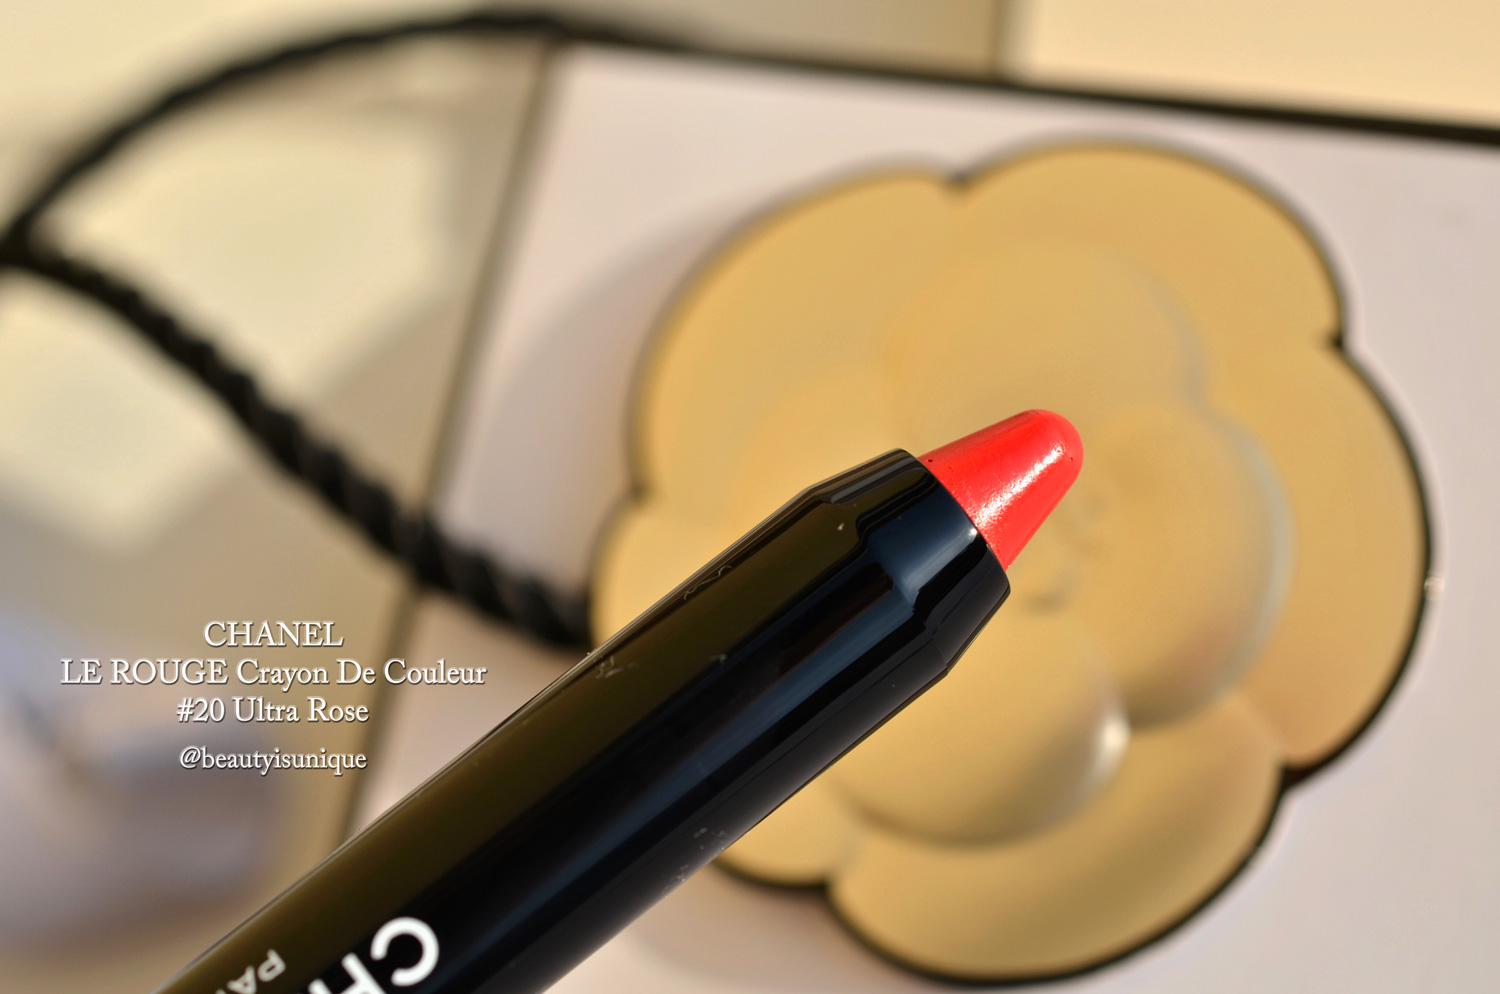 Chanel-les-beiges-eyeshadow-palette-light-swatcheschaneljumbo-longwear-lip-crayon-ultra-rose